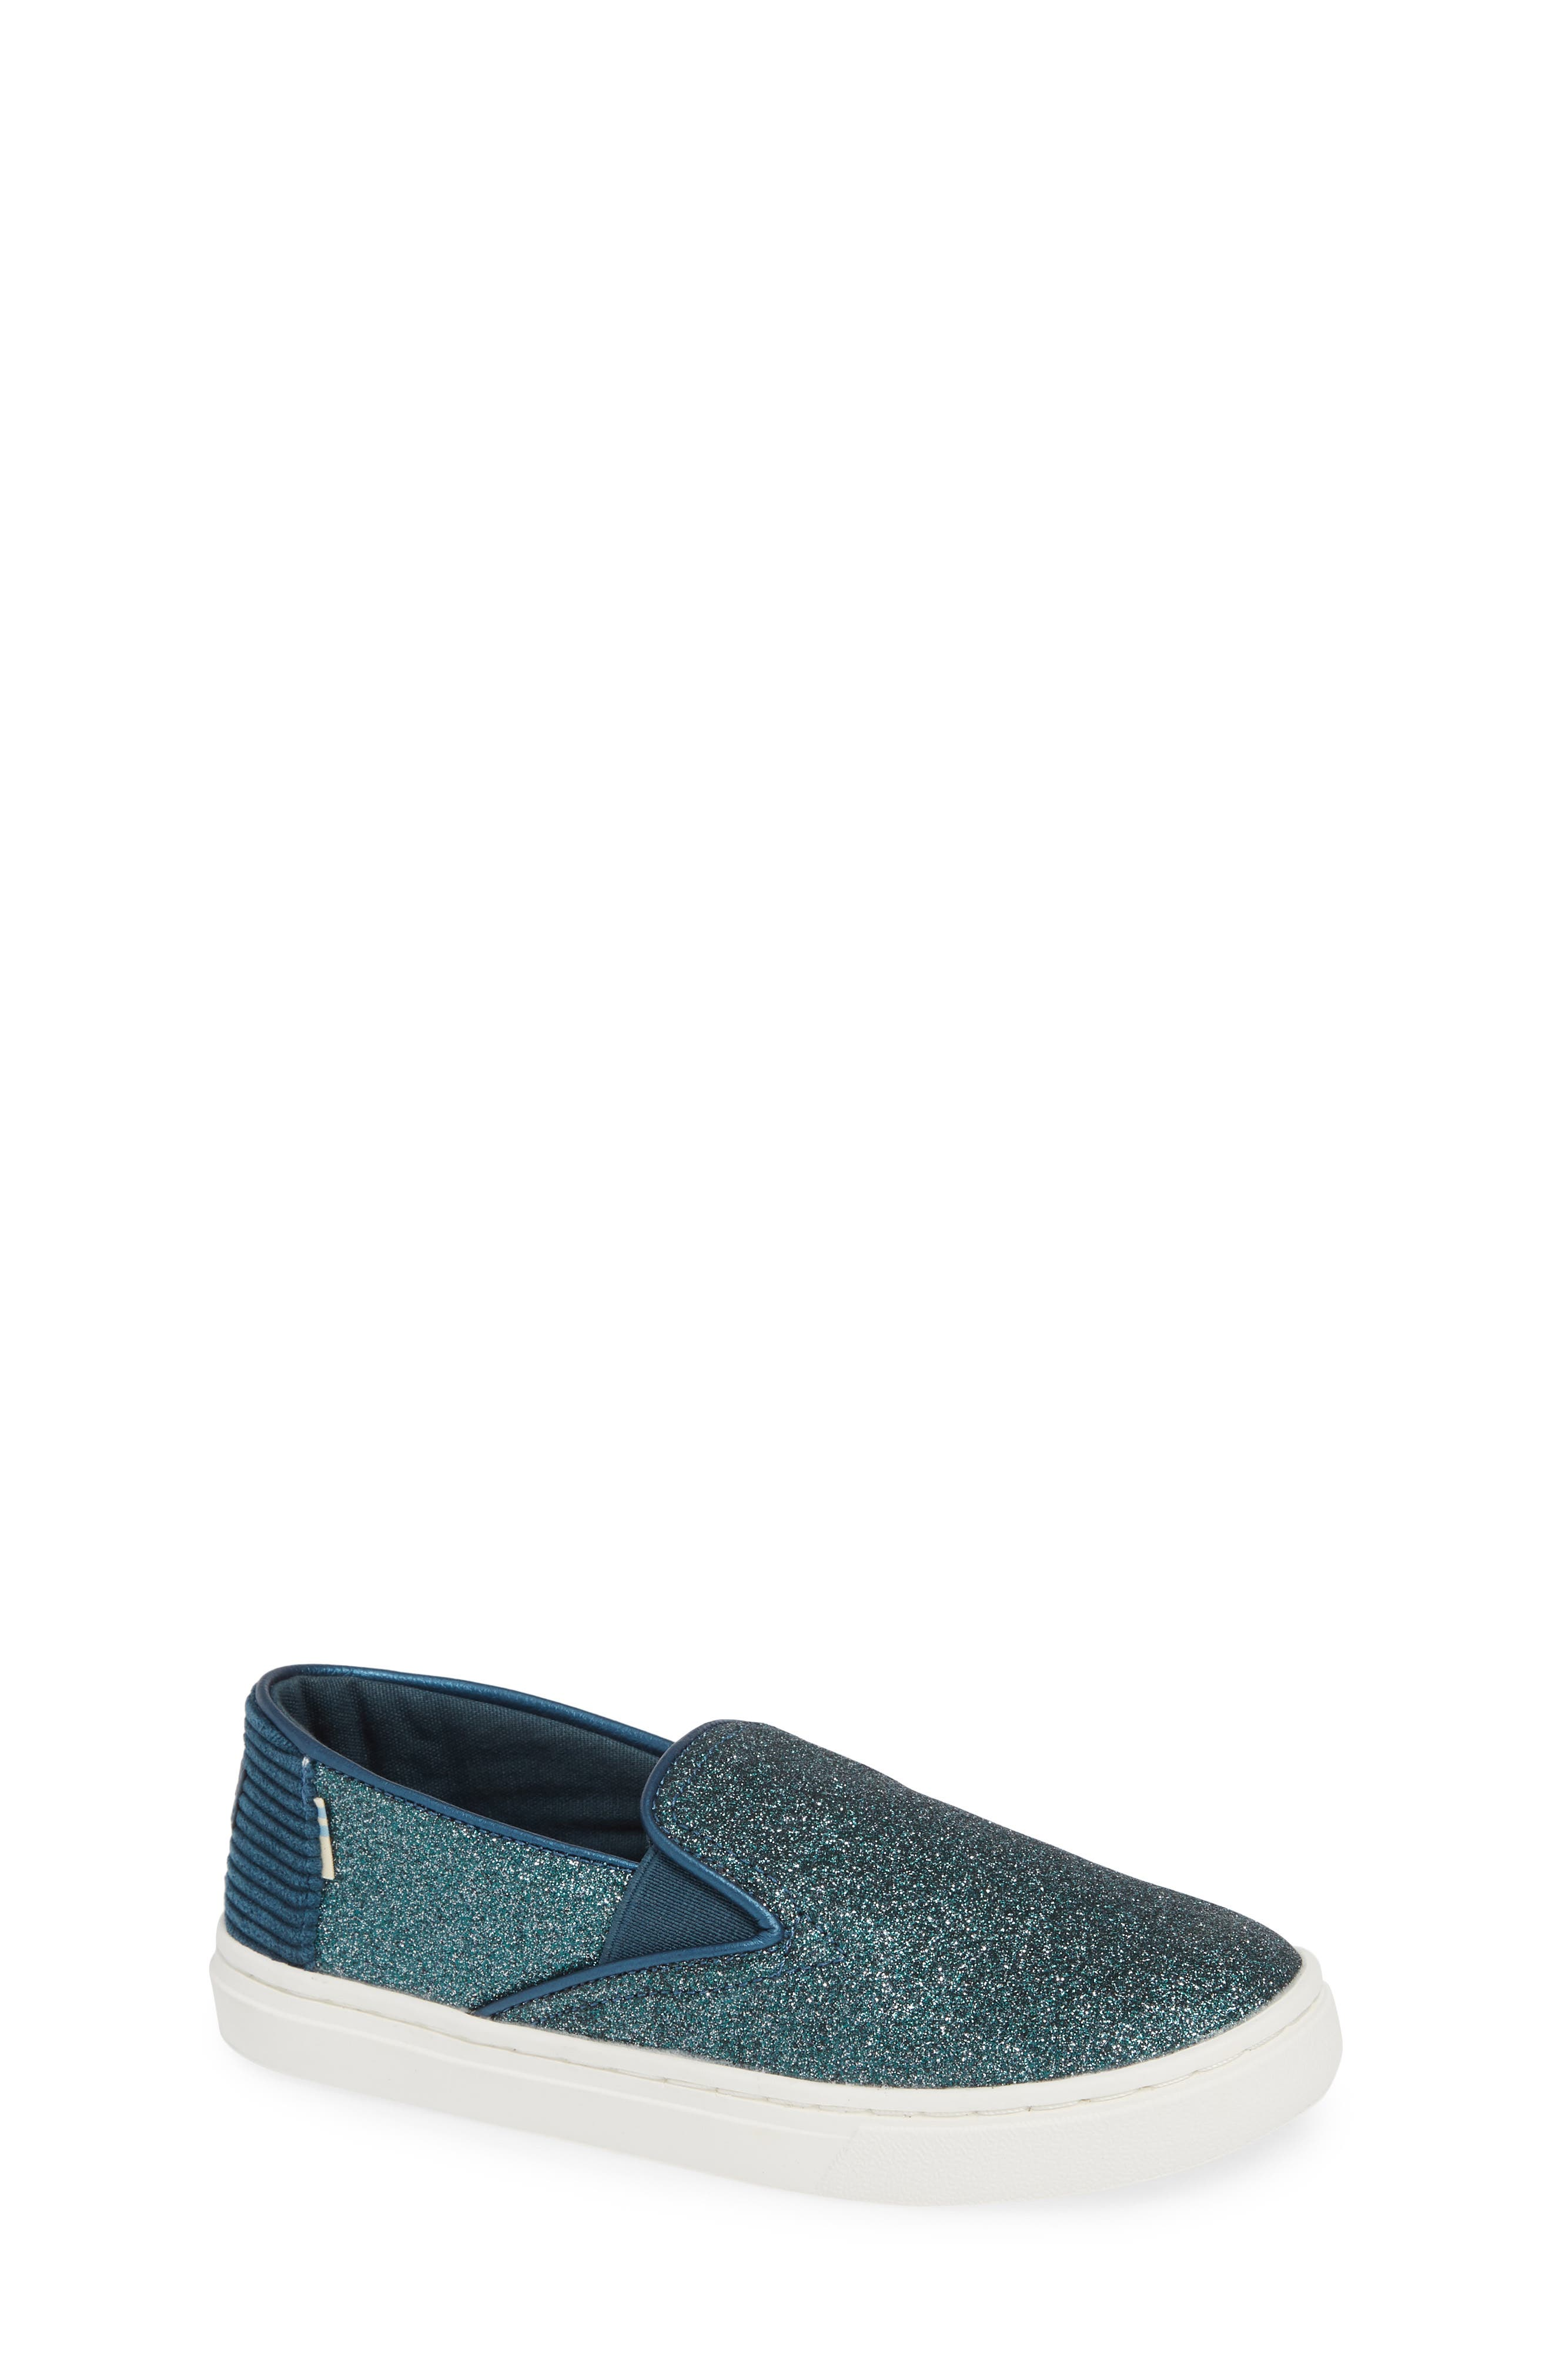 Luca Slip-On Sneaker,                         Main,                         color, ATLANTIC IRIDESCENT/ CORDUROY